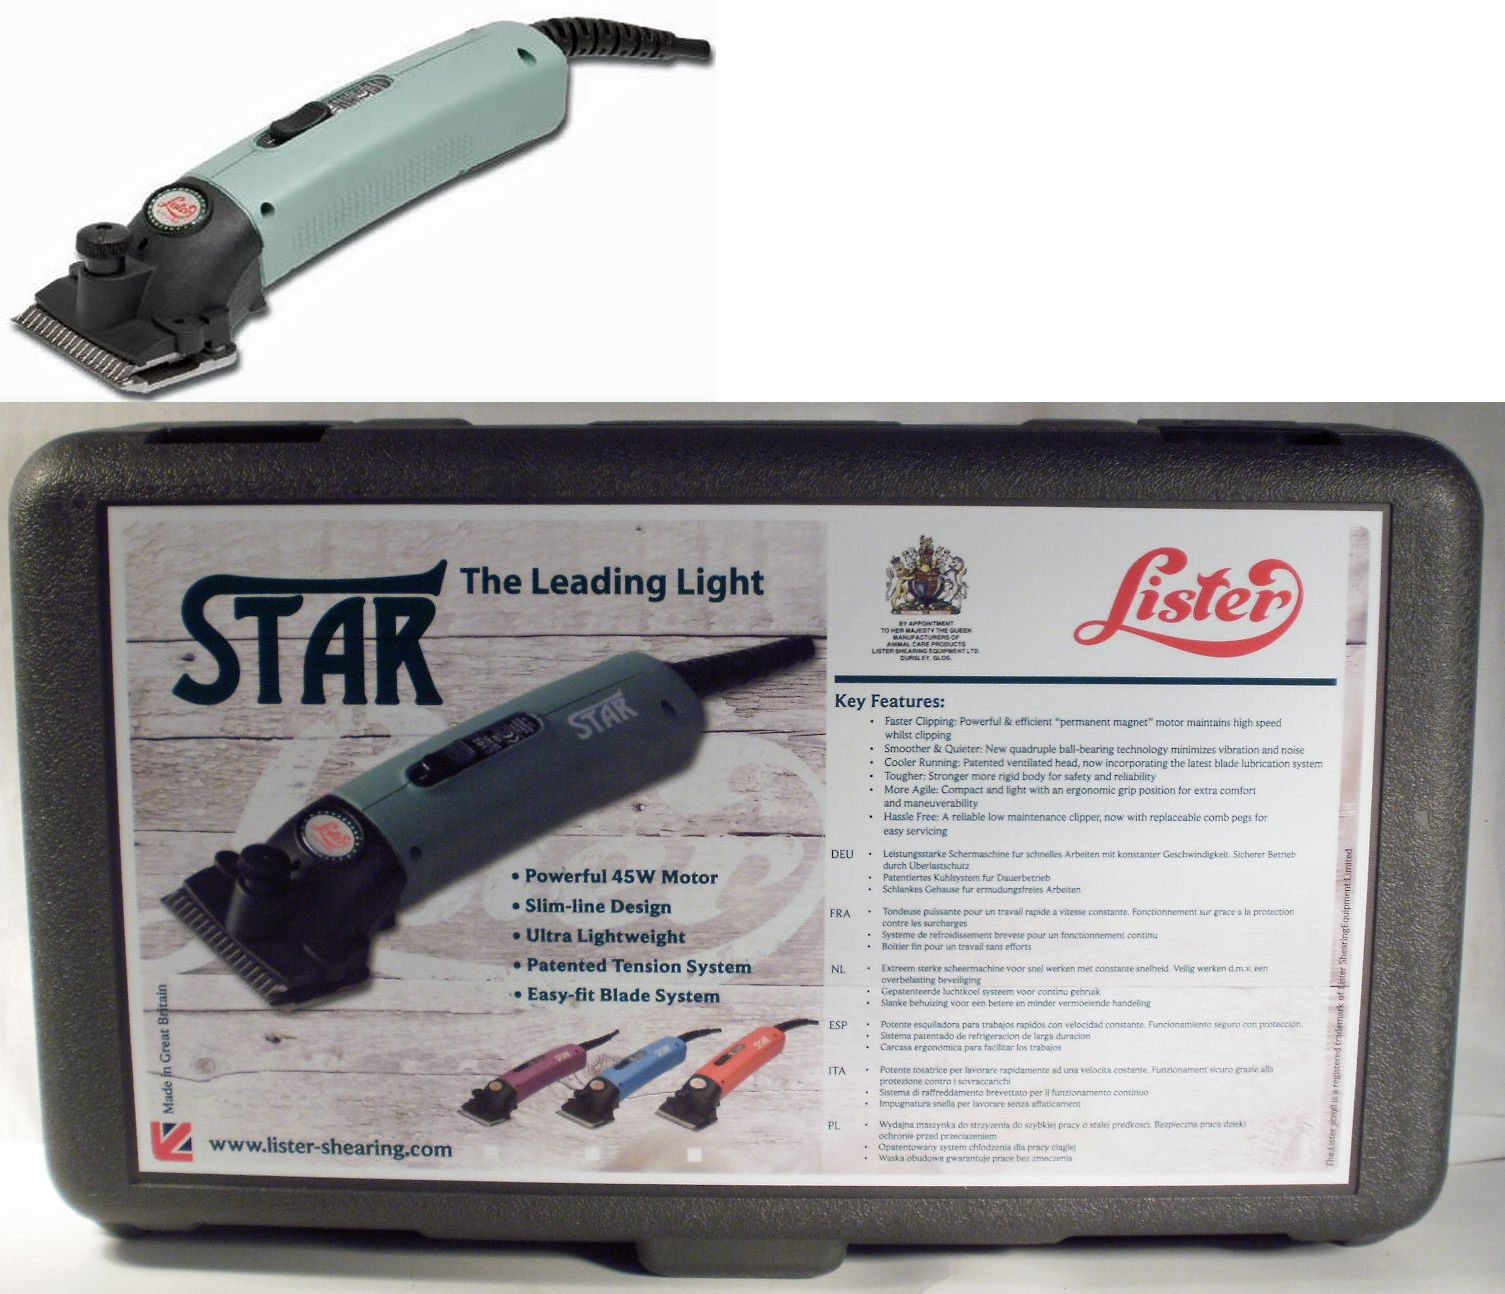 Horse Clippers 183405 Lister Star Clipper Kit It Now Only 283